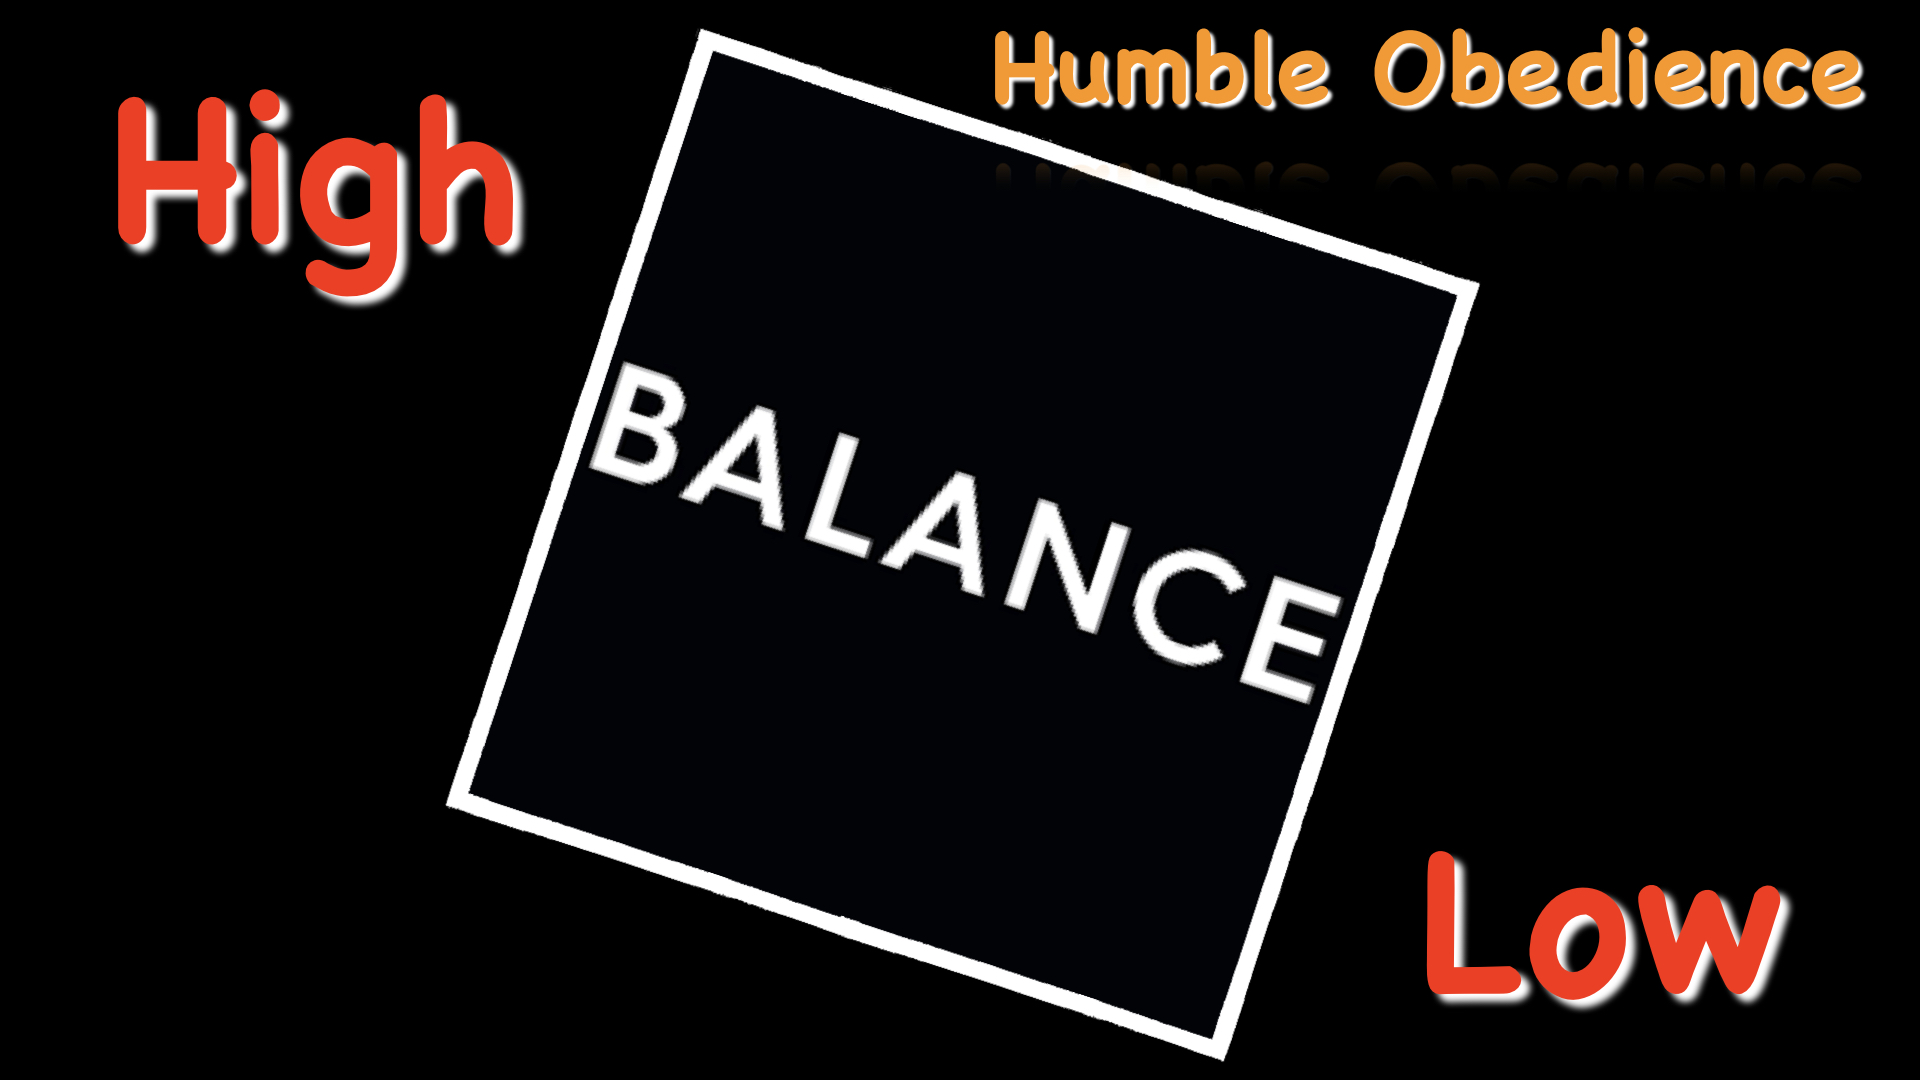 Humble Obedience 5192019 83931 AM